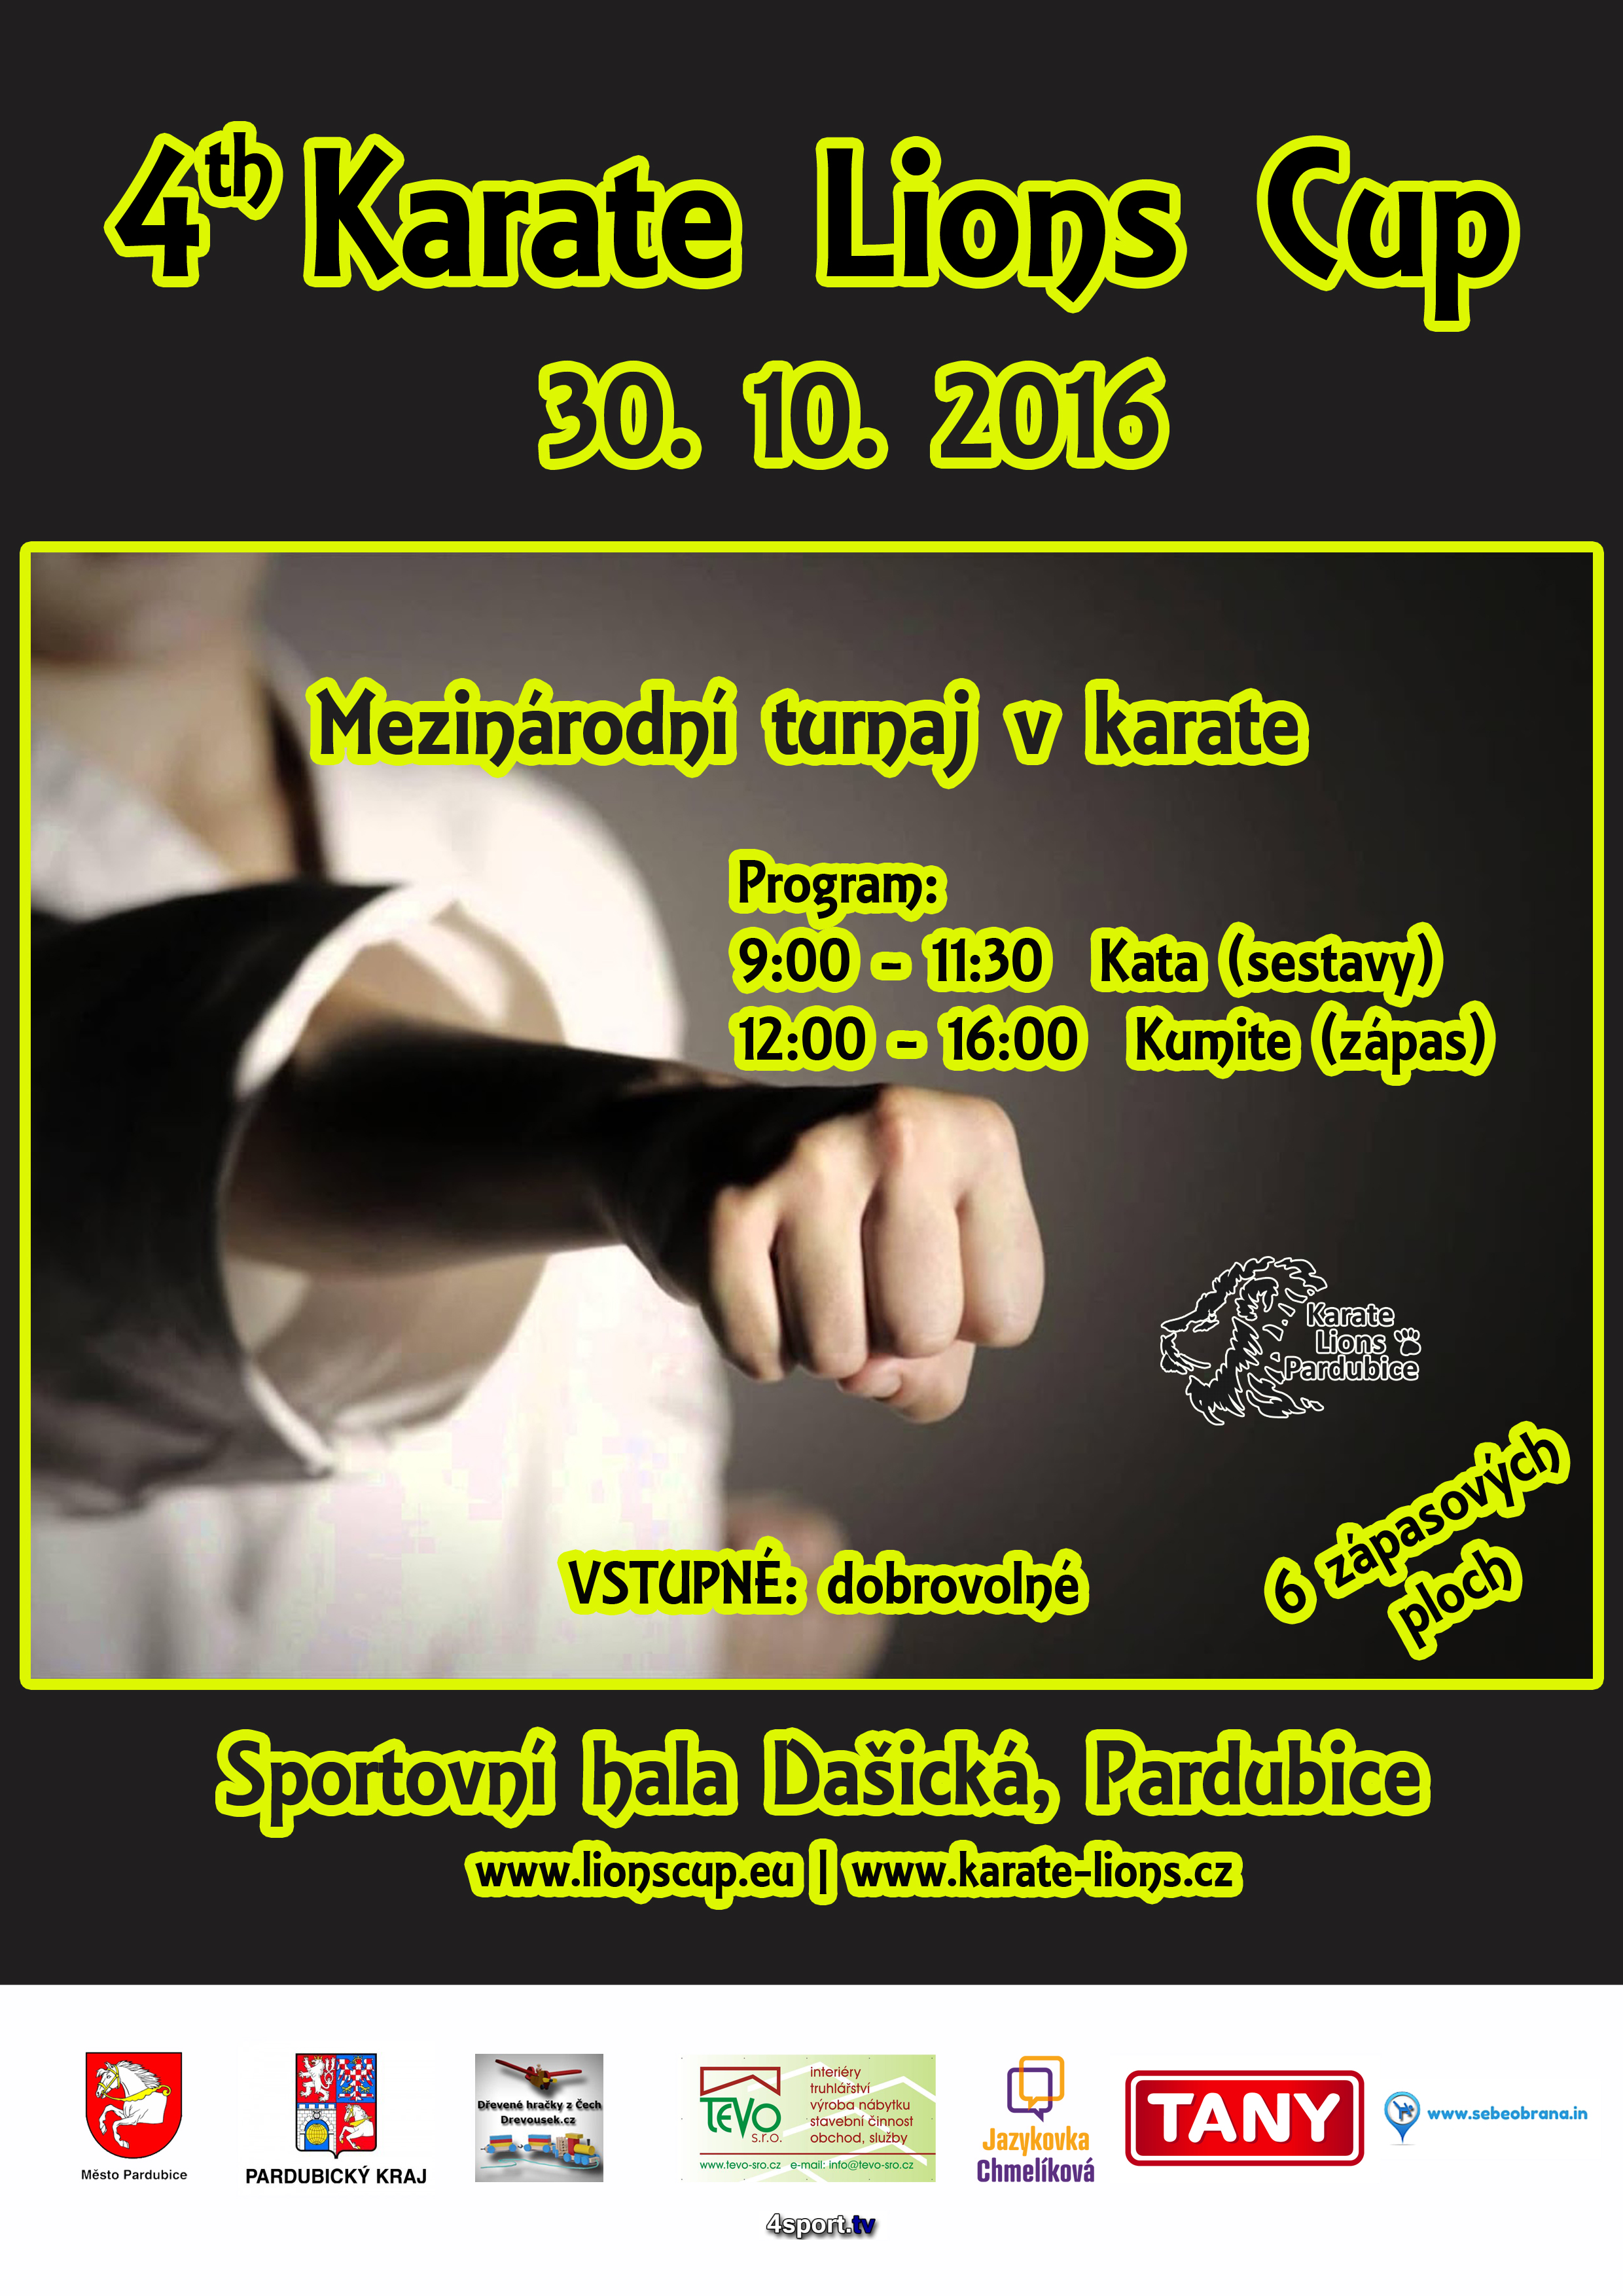 4th Karate Lions Cup 2016